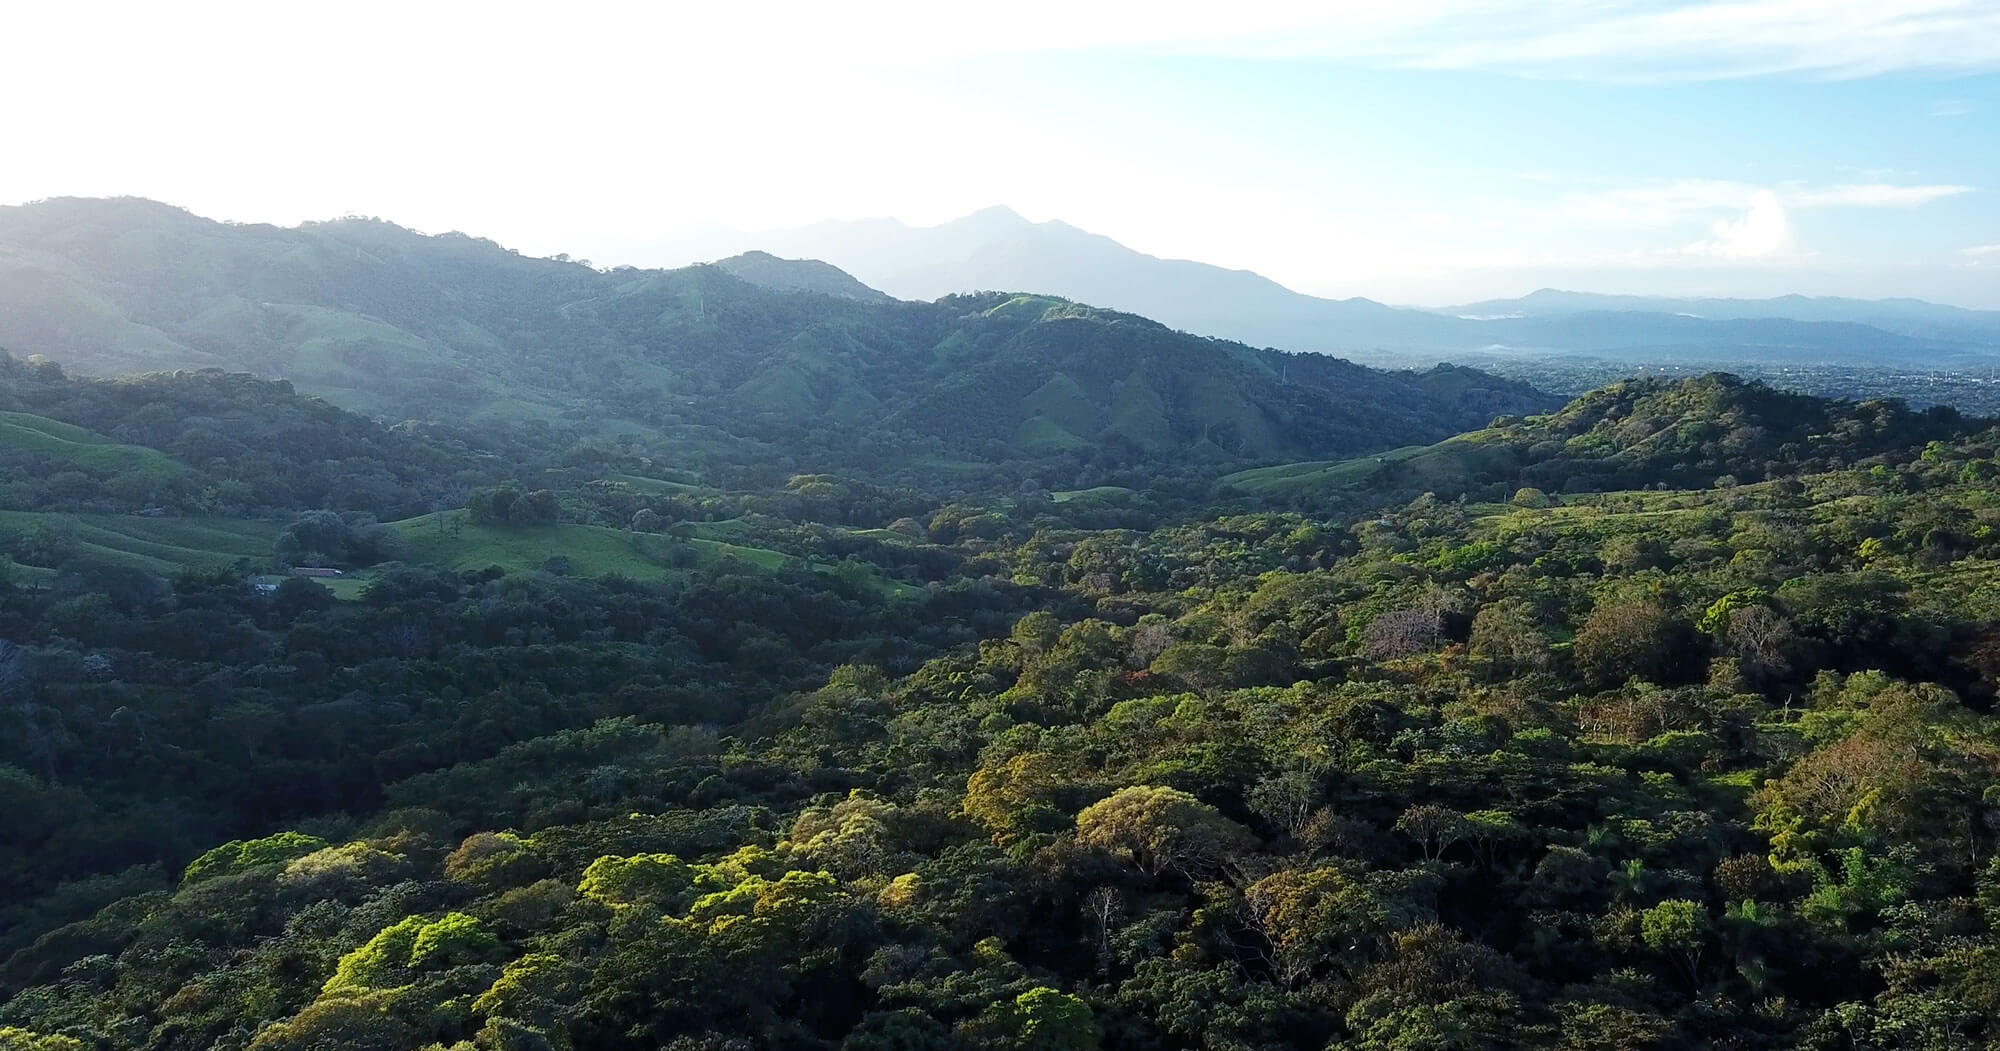 Designing a Regenerative Future   Alegría Village is a new ecological neighborhood in the hills of San Mateo, Costa Rica.   Learn More